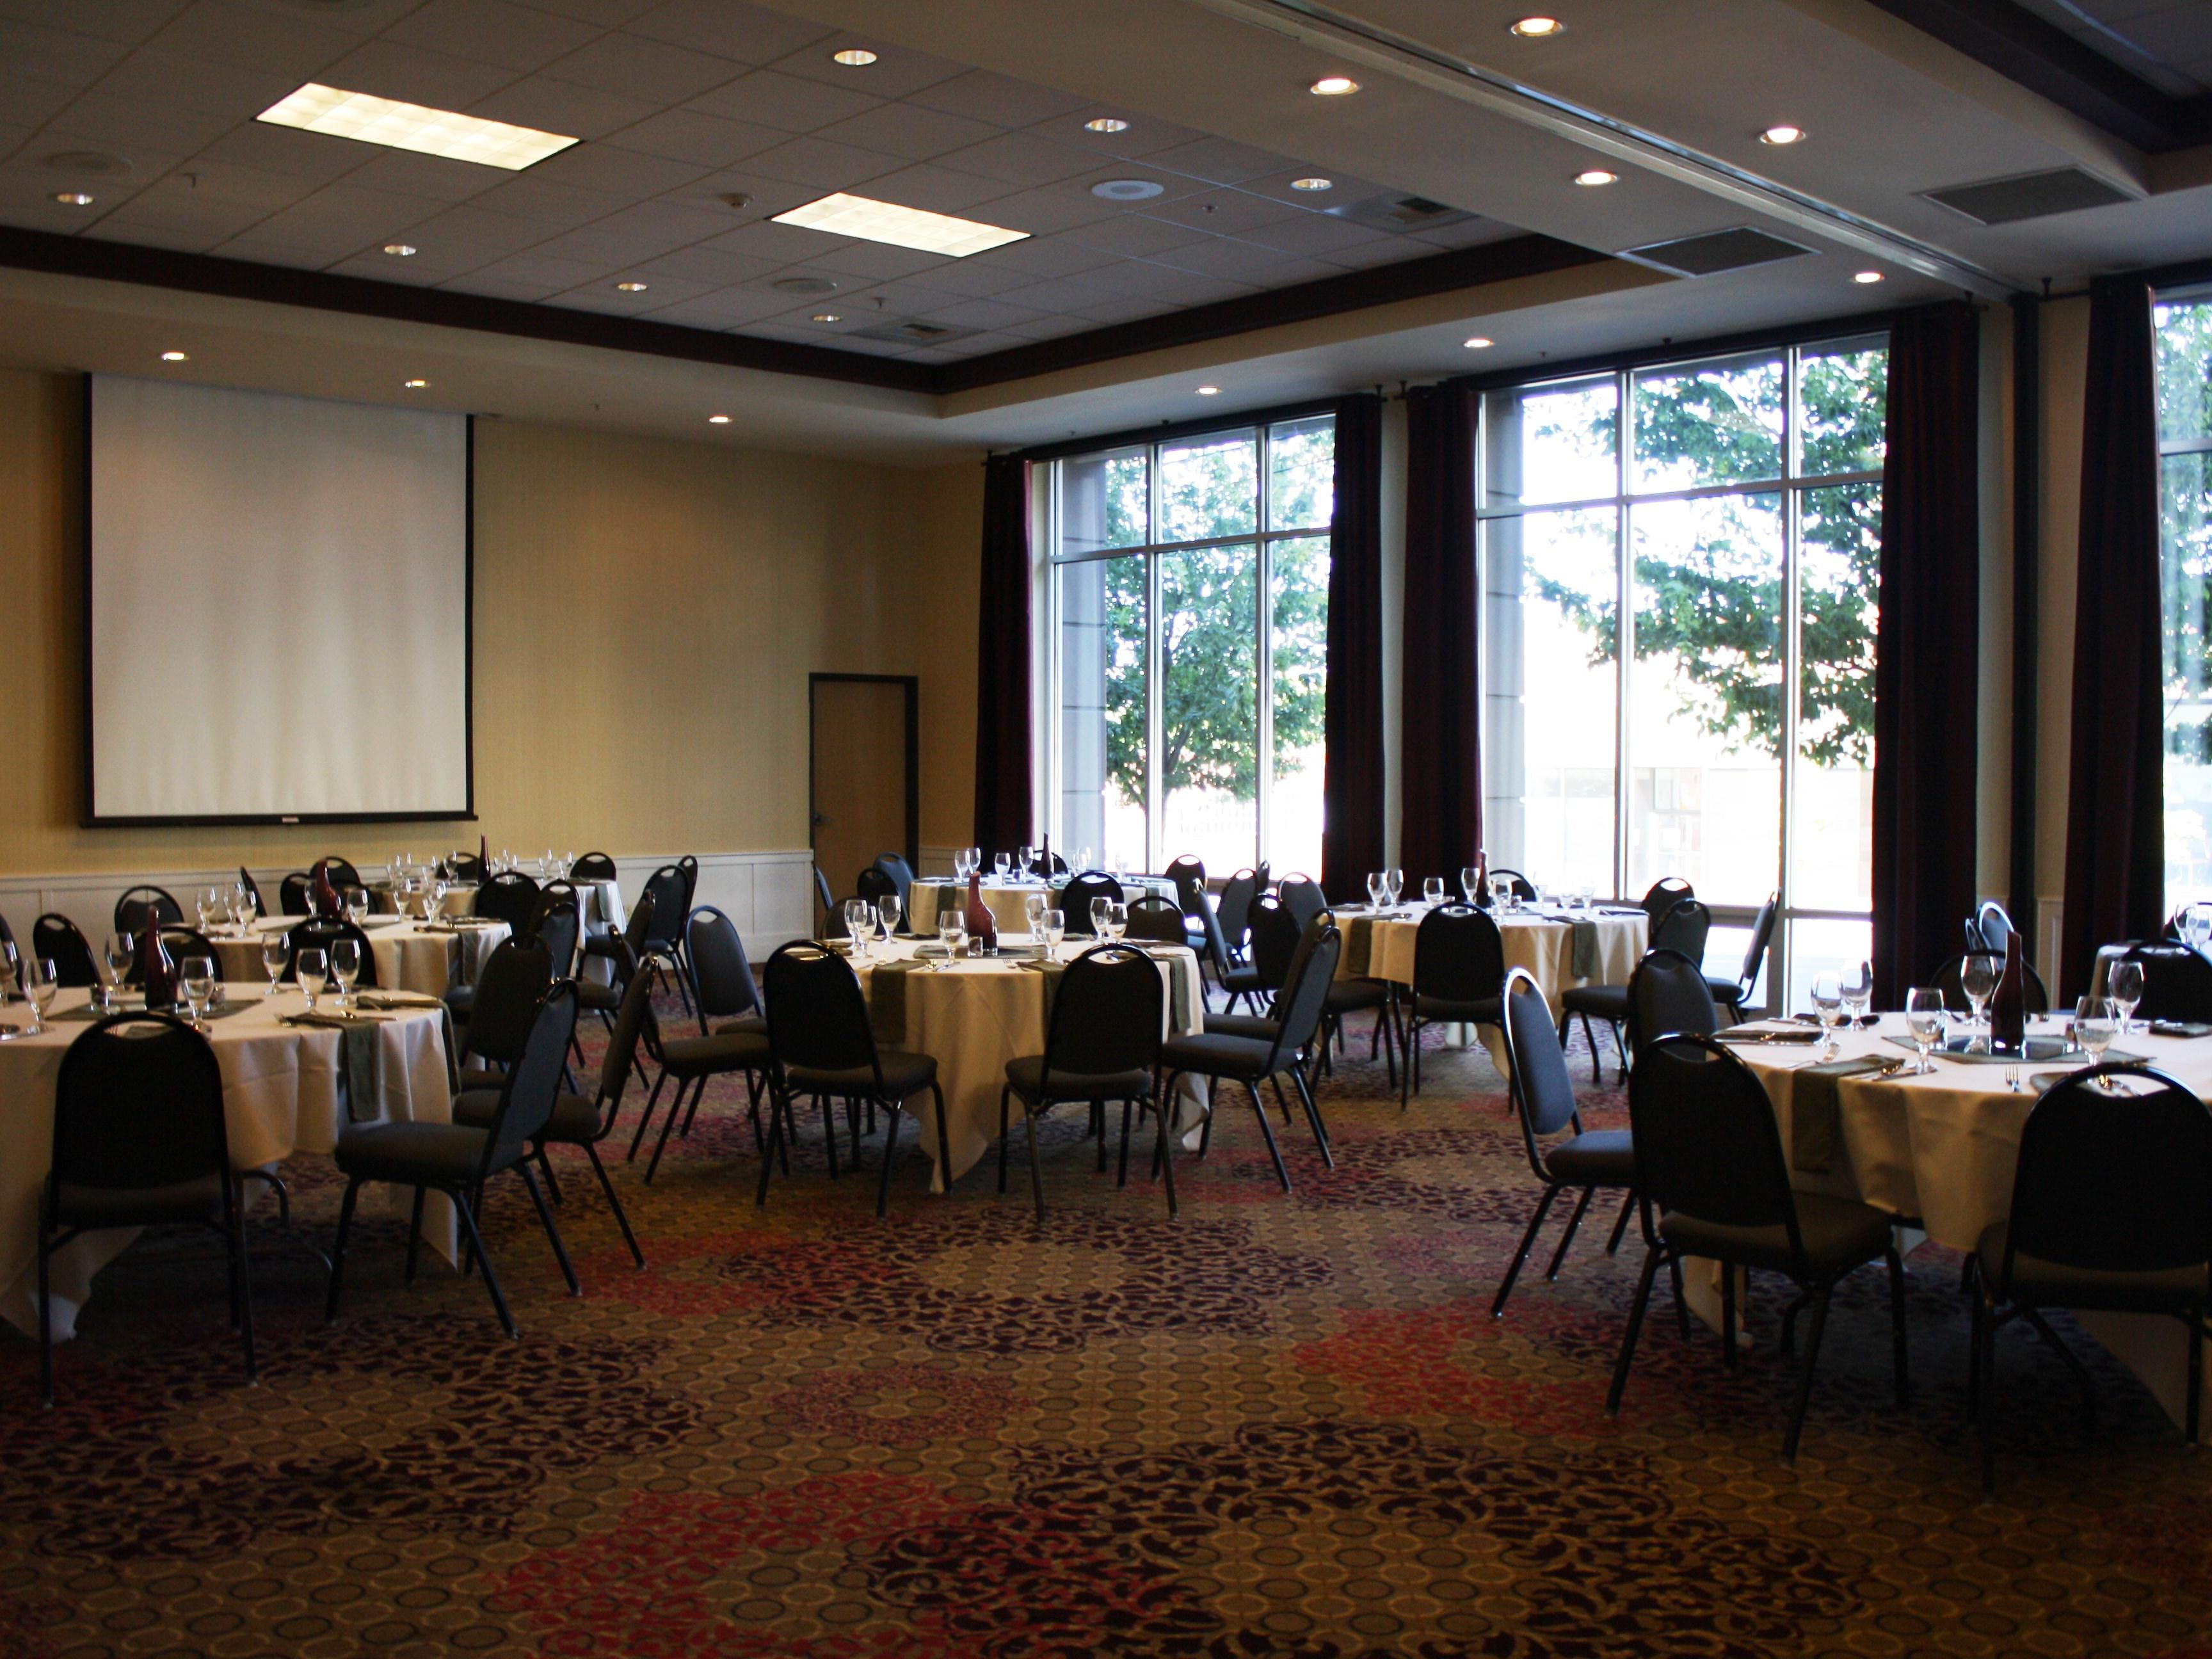 Our Ballroom can accommodate groups up to 120 people